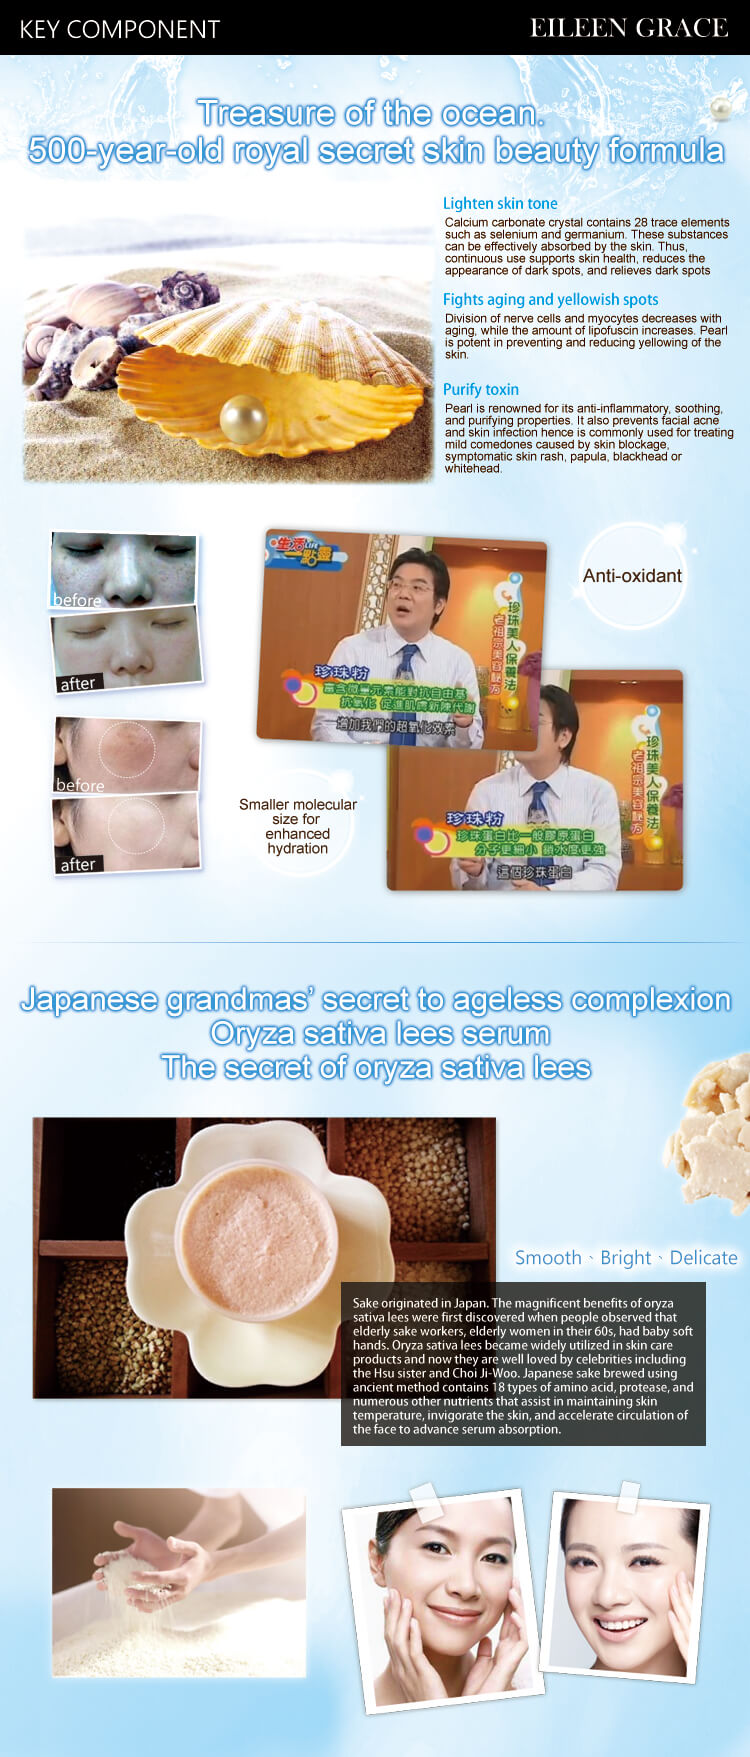 Pearl Whitening Mask - Key Component